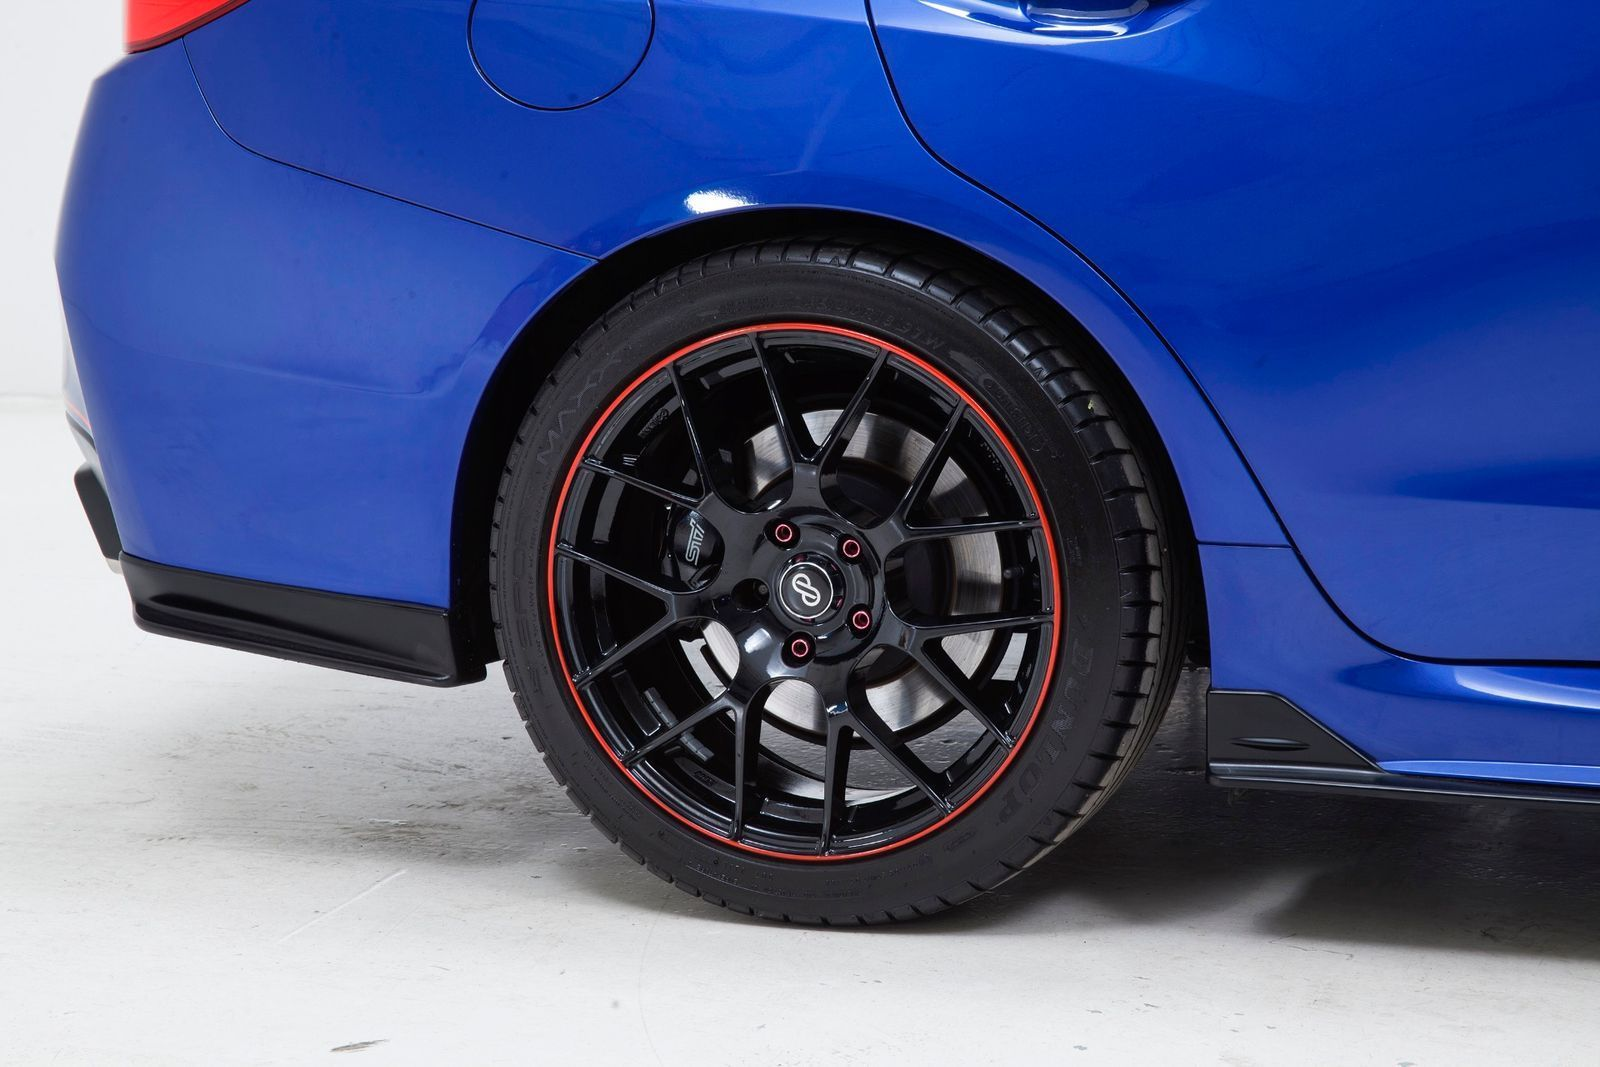 Amazing 2016 Subaru WRX Cobb Stage-2 With Many Upgrades 2016 Subaru Impreza  WRX STi Sedan Cobb Stage-2 With Many Upgrades! MUST SEE 2018-2019